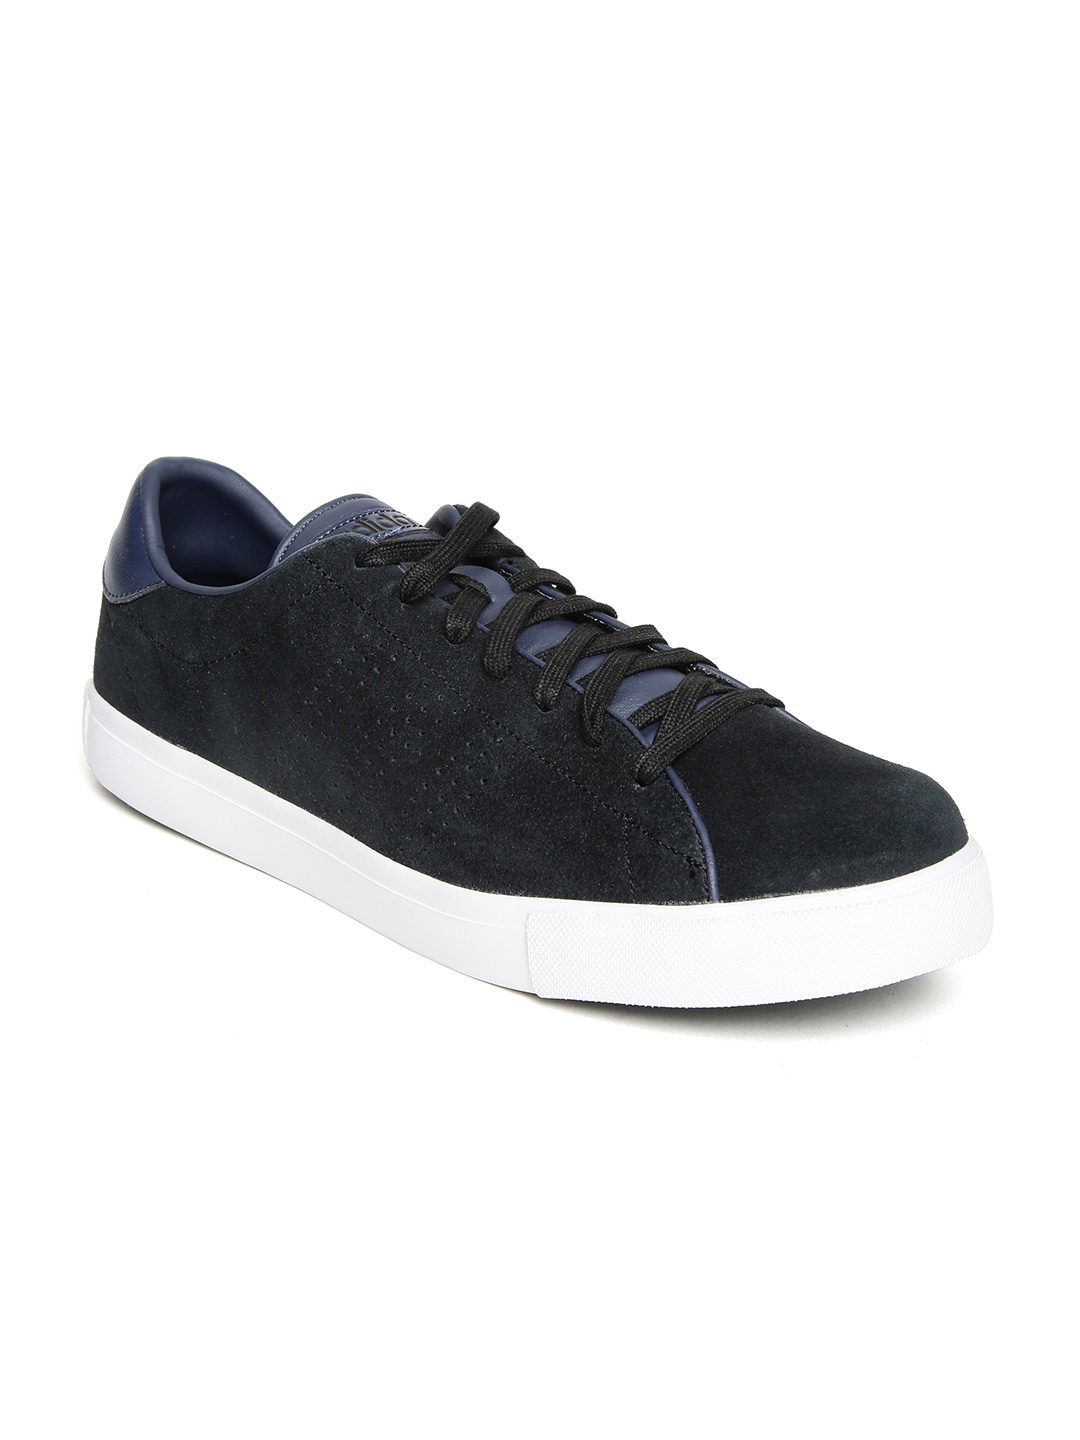 Adidas Neo Daily Suede Sneaker